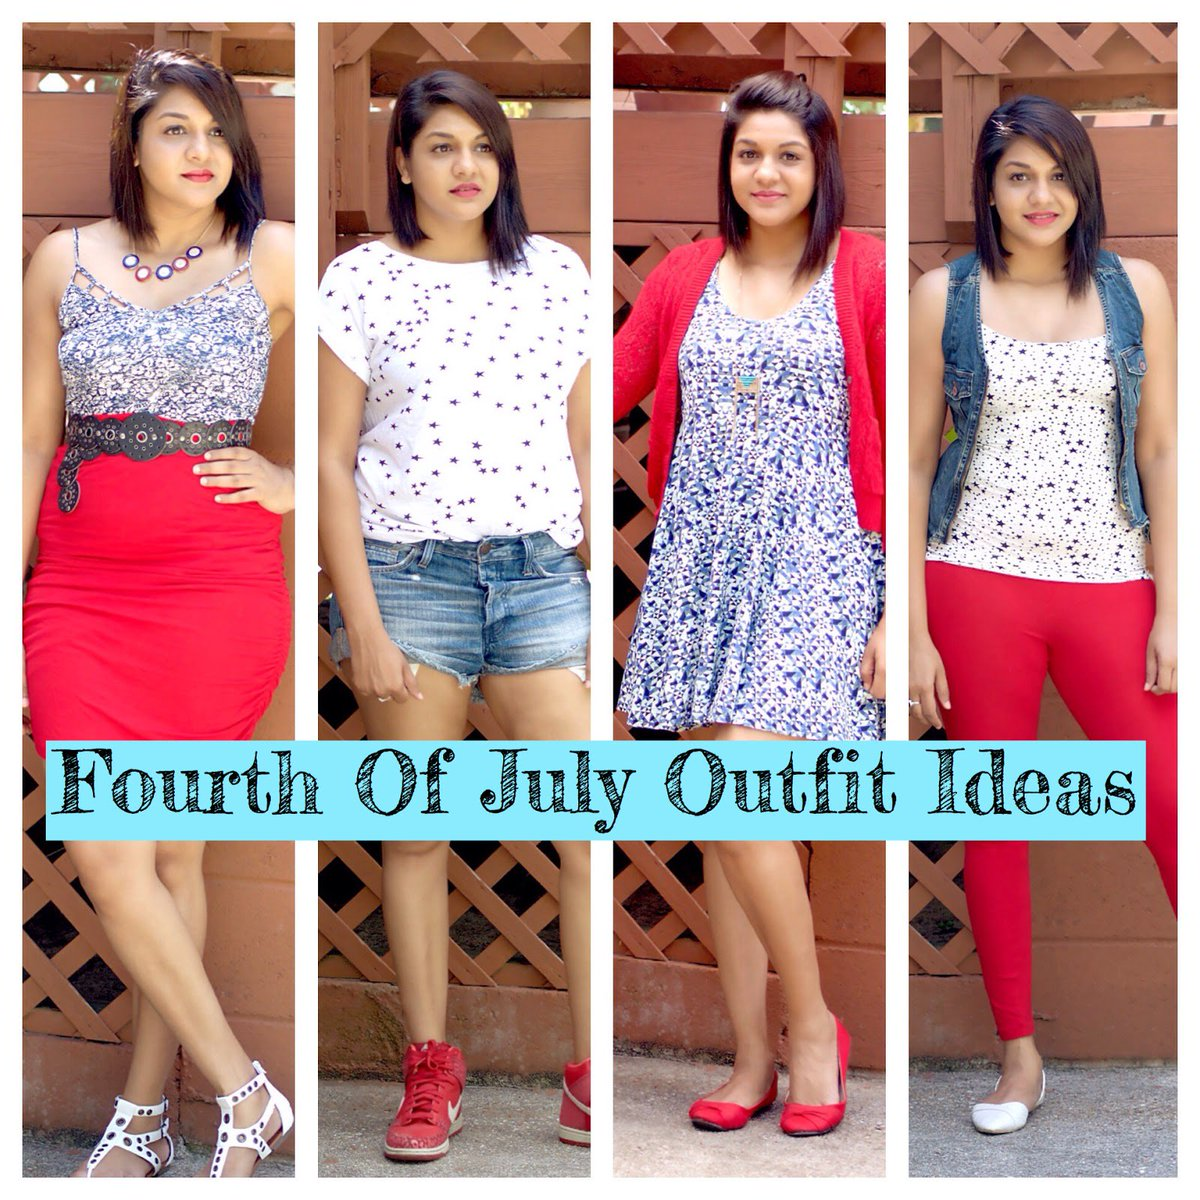 Fourth Of July Outfit Ideas :)  http://www. kittyslifestyle.com/2016/06/fourth -of-july-outfit-ideas.html &nbsp; …  #July4th #JulyFourth #outfitideas #outfit #outfitoftheday  #blogpost #FourthOfJuly<br>http://pic.twitter.com/SjTr8ImSkY